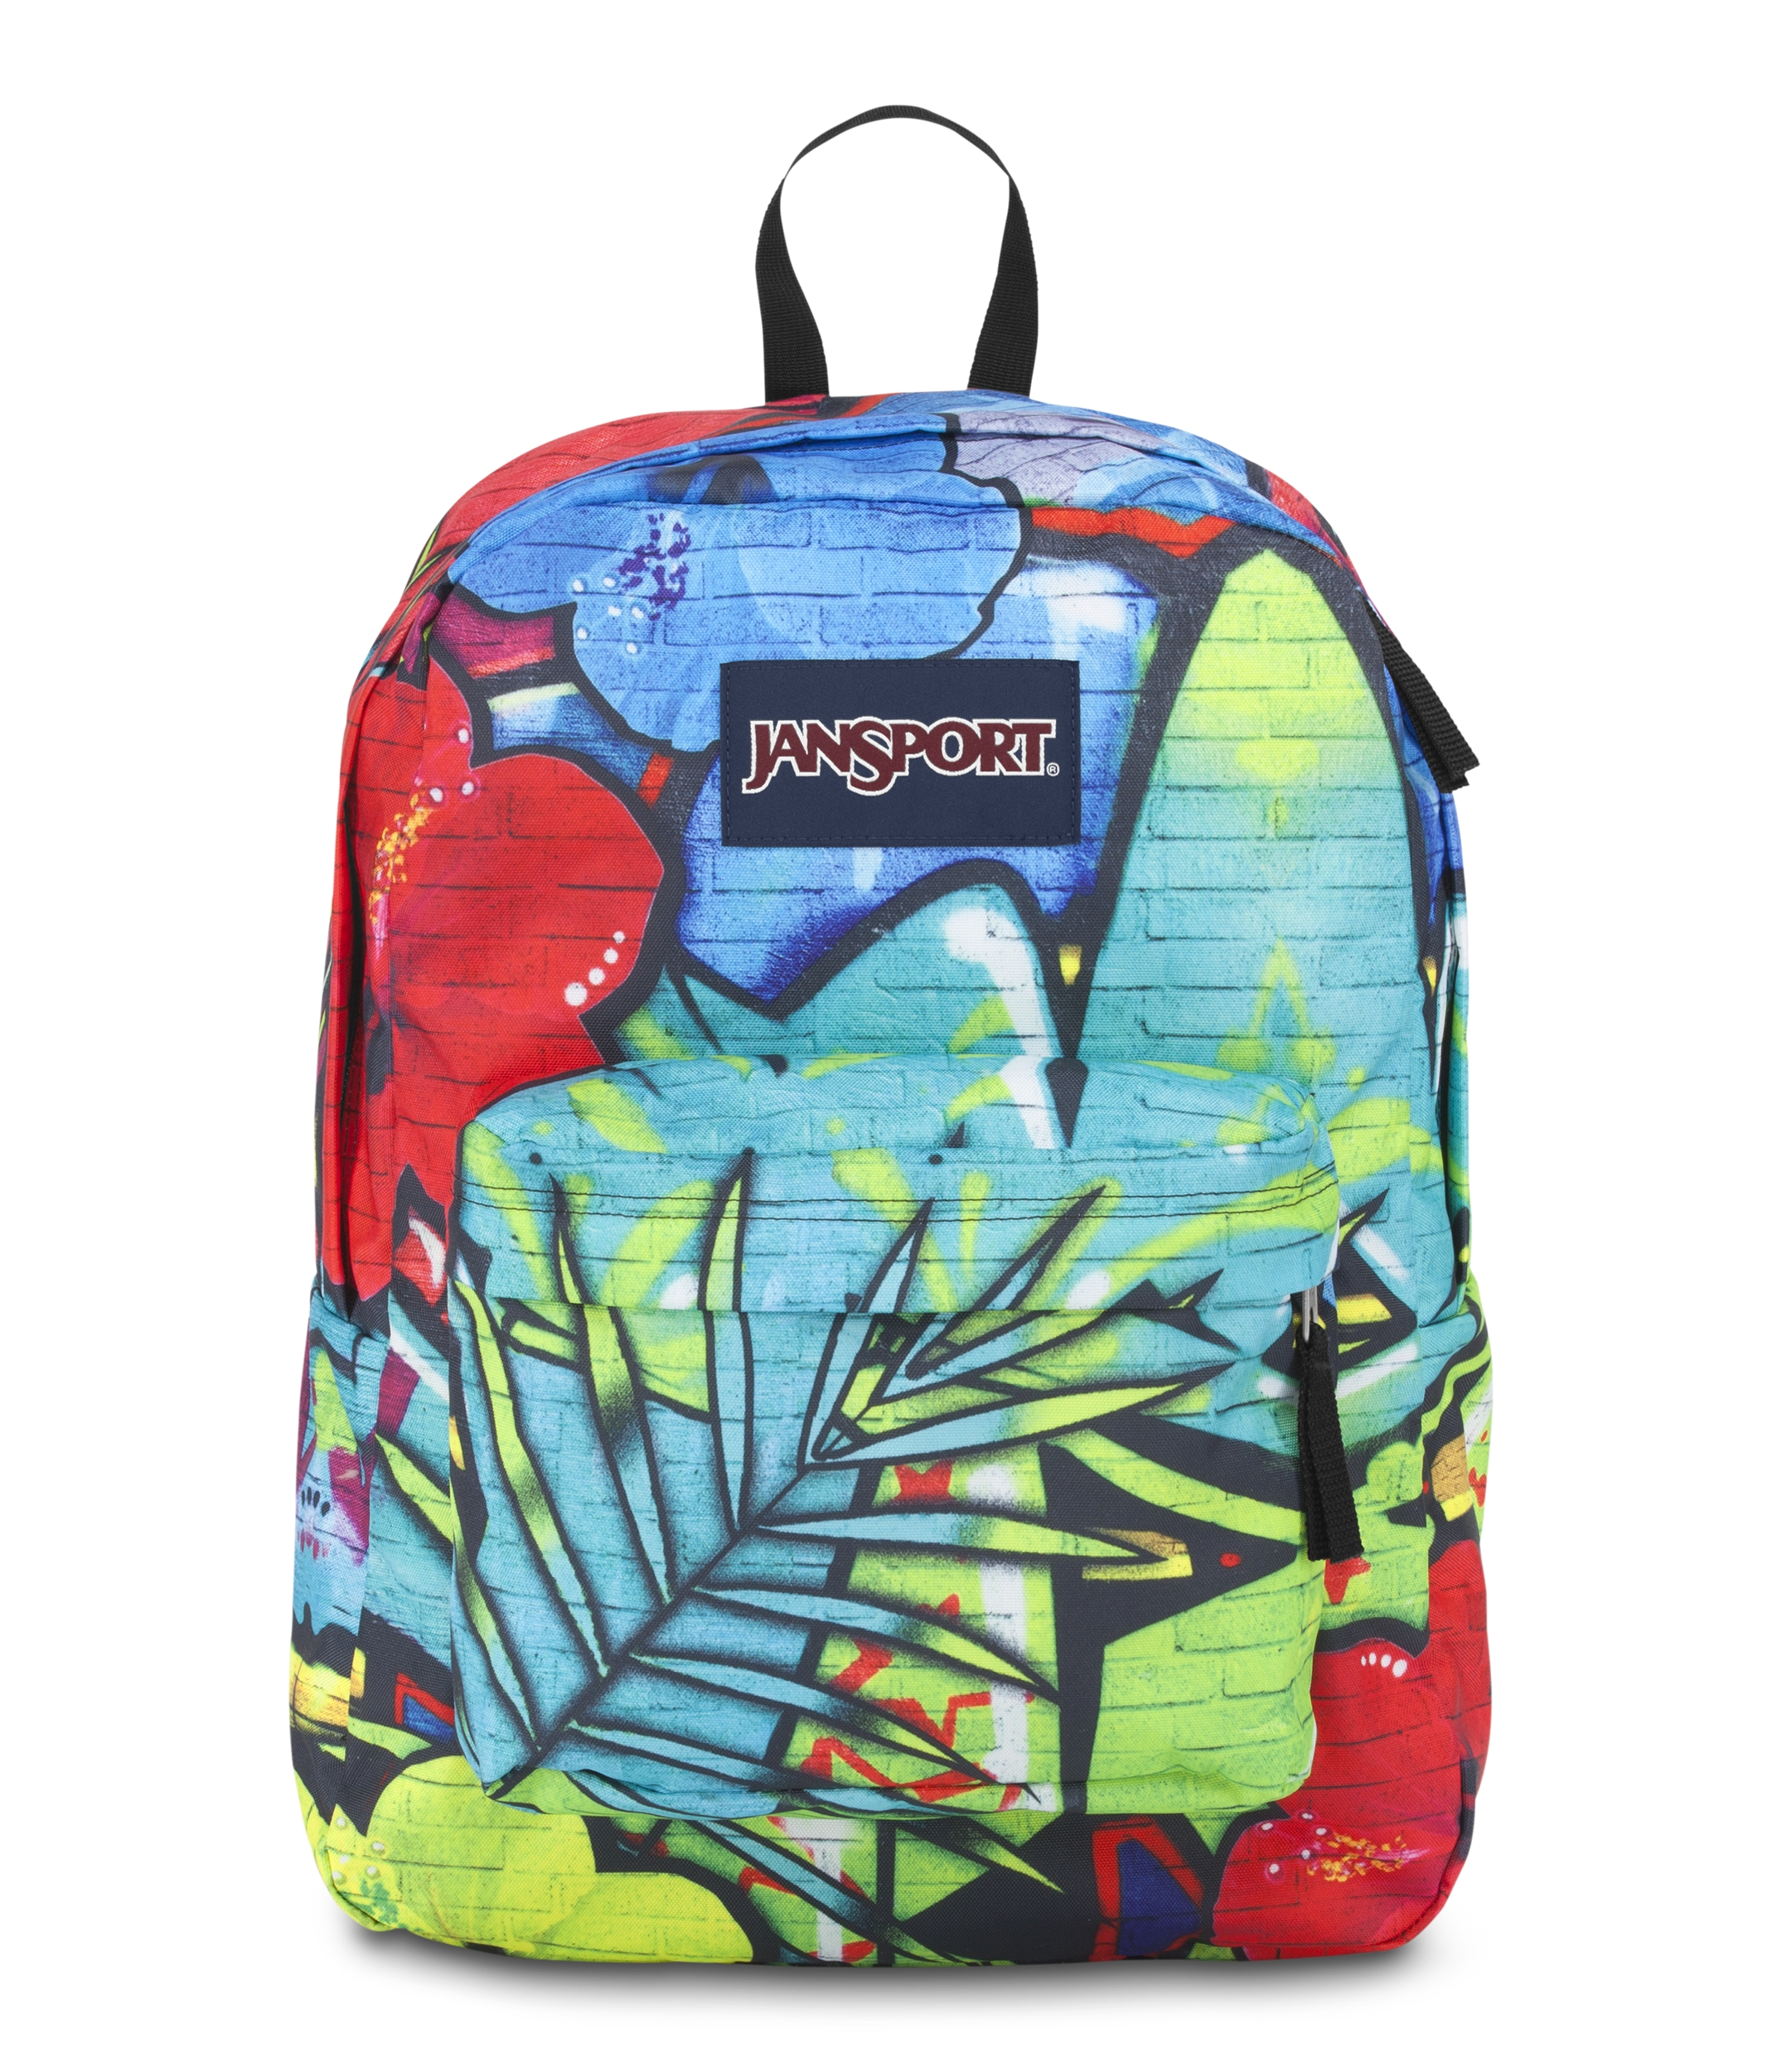 Staples Debuts New Trends for 2016 Back-to-School Supplies at the ...